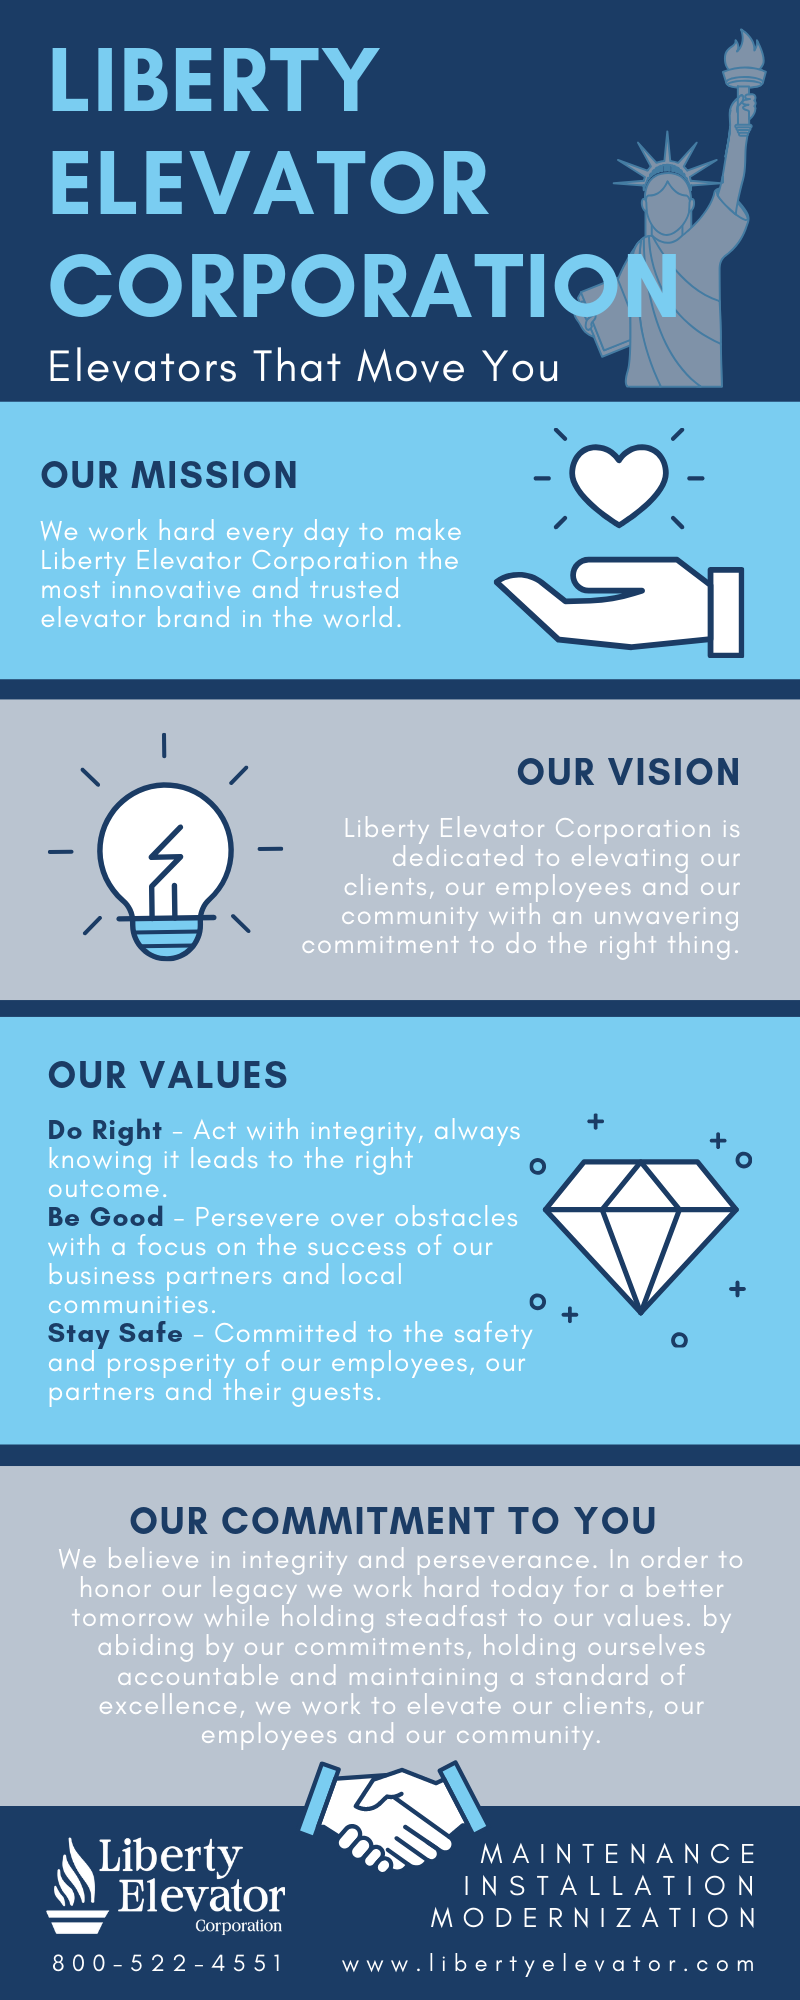 Mission Vision Values of Liberty Elevator